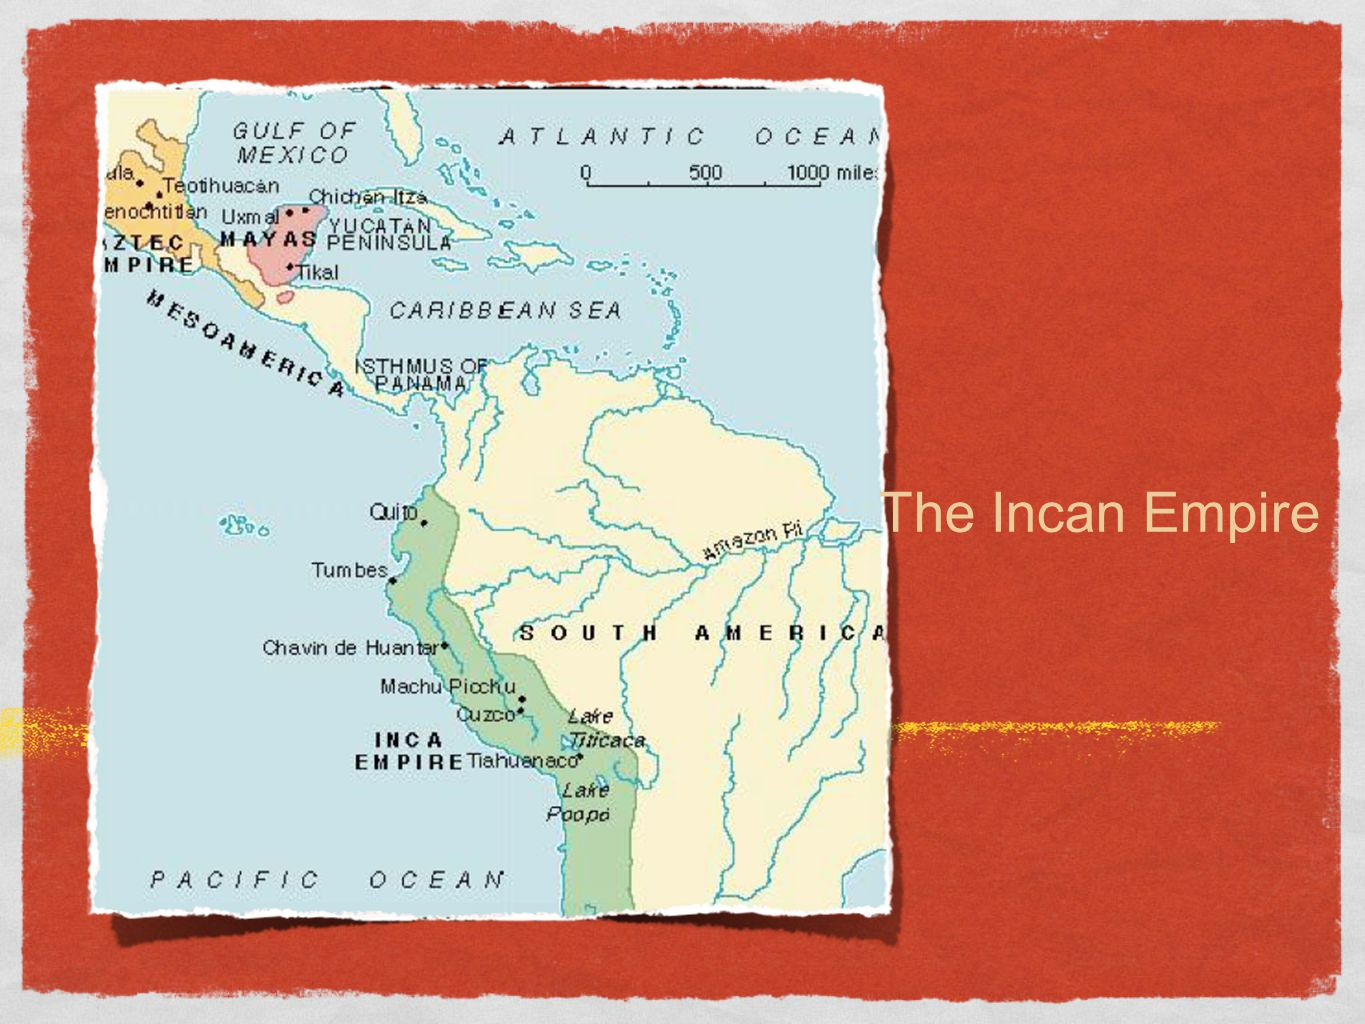 The Incan Empire